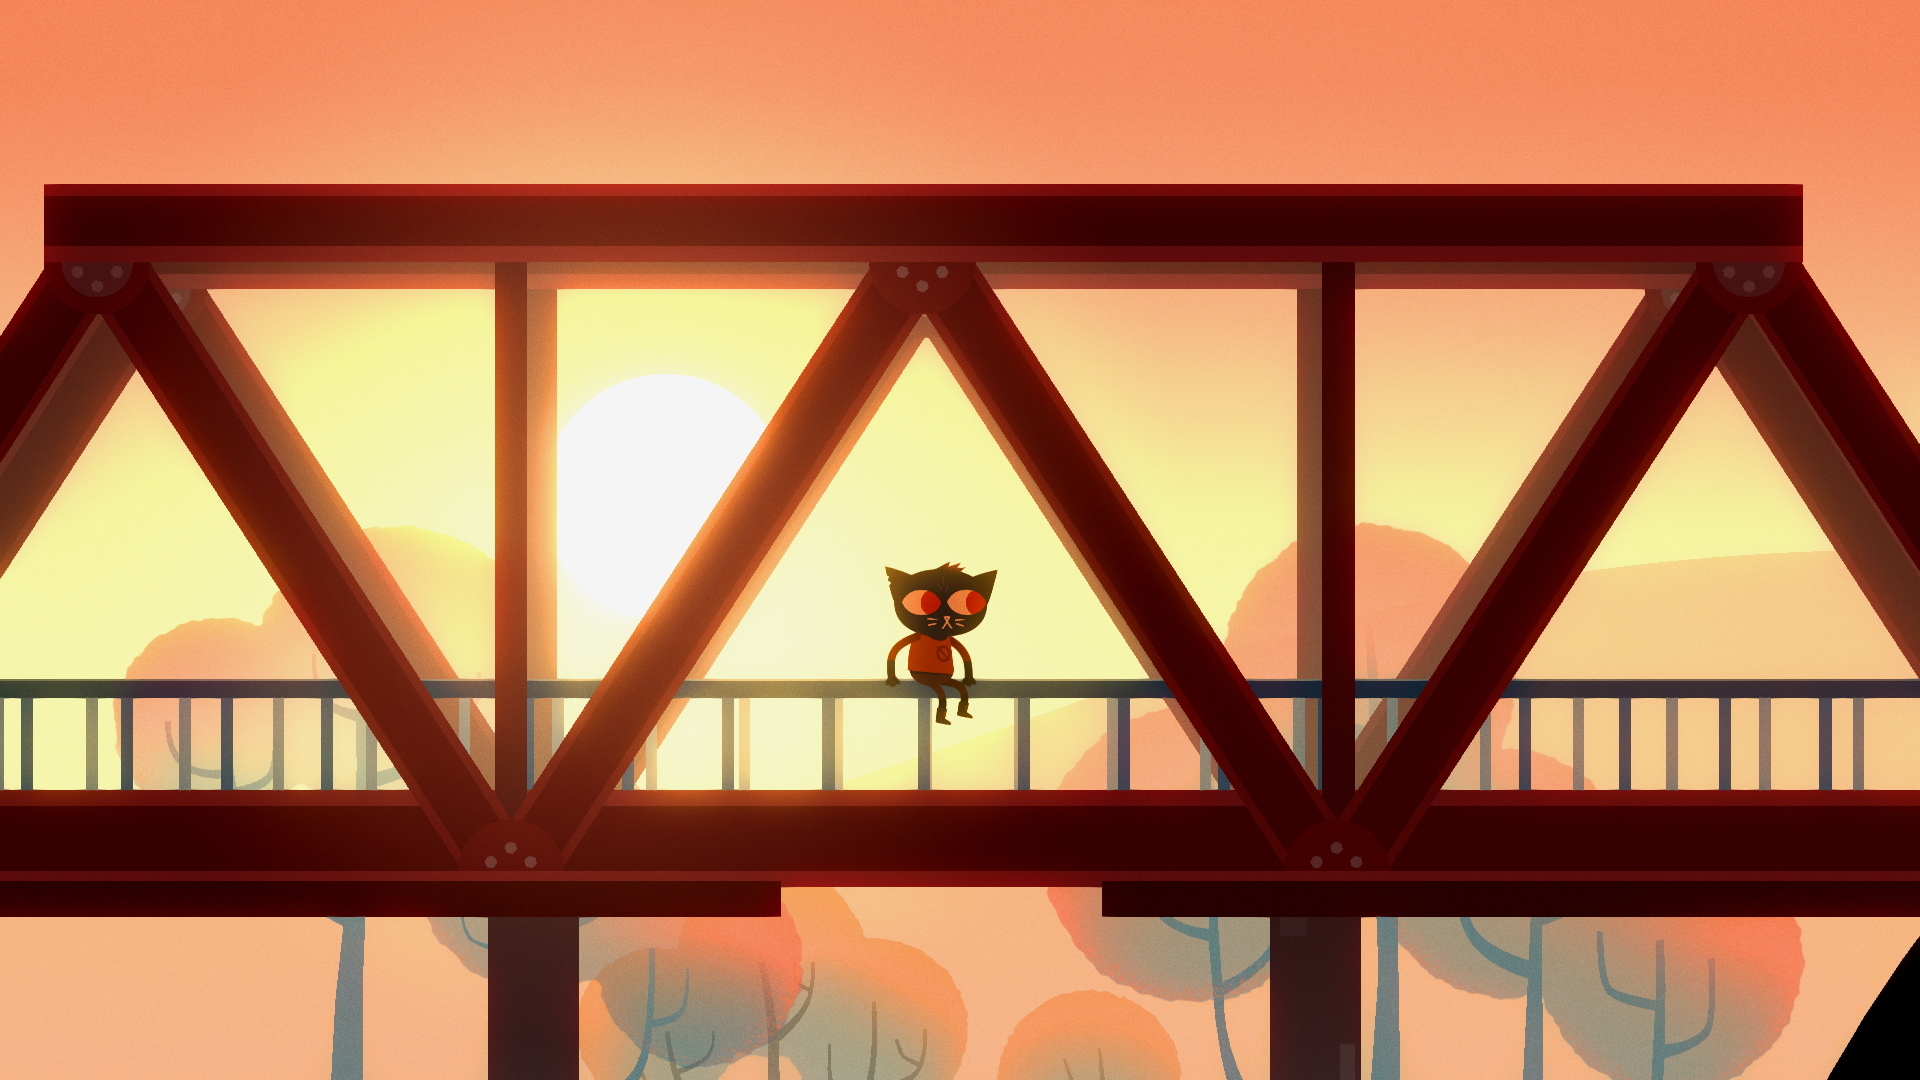 nitw-interstitial-2.png